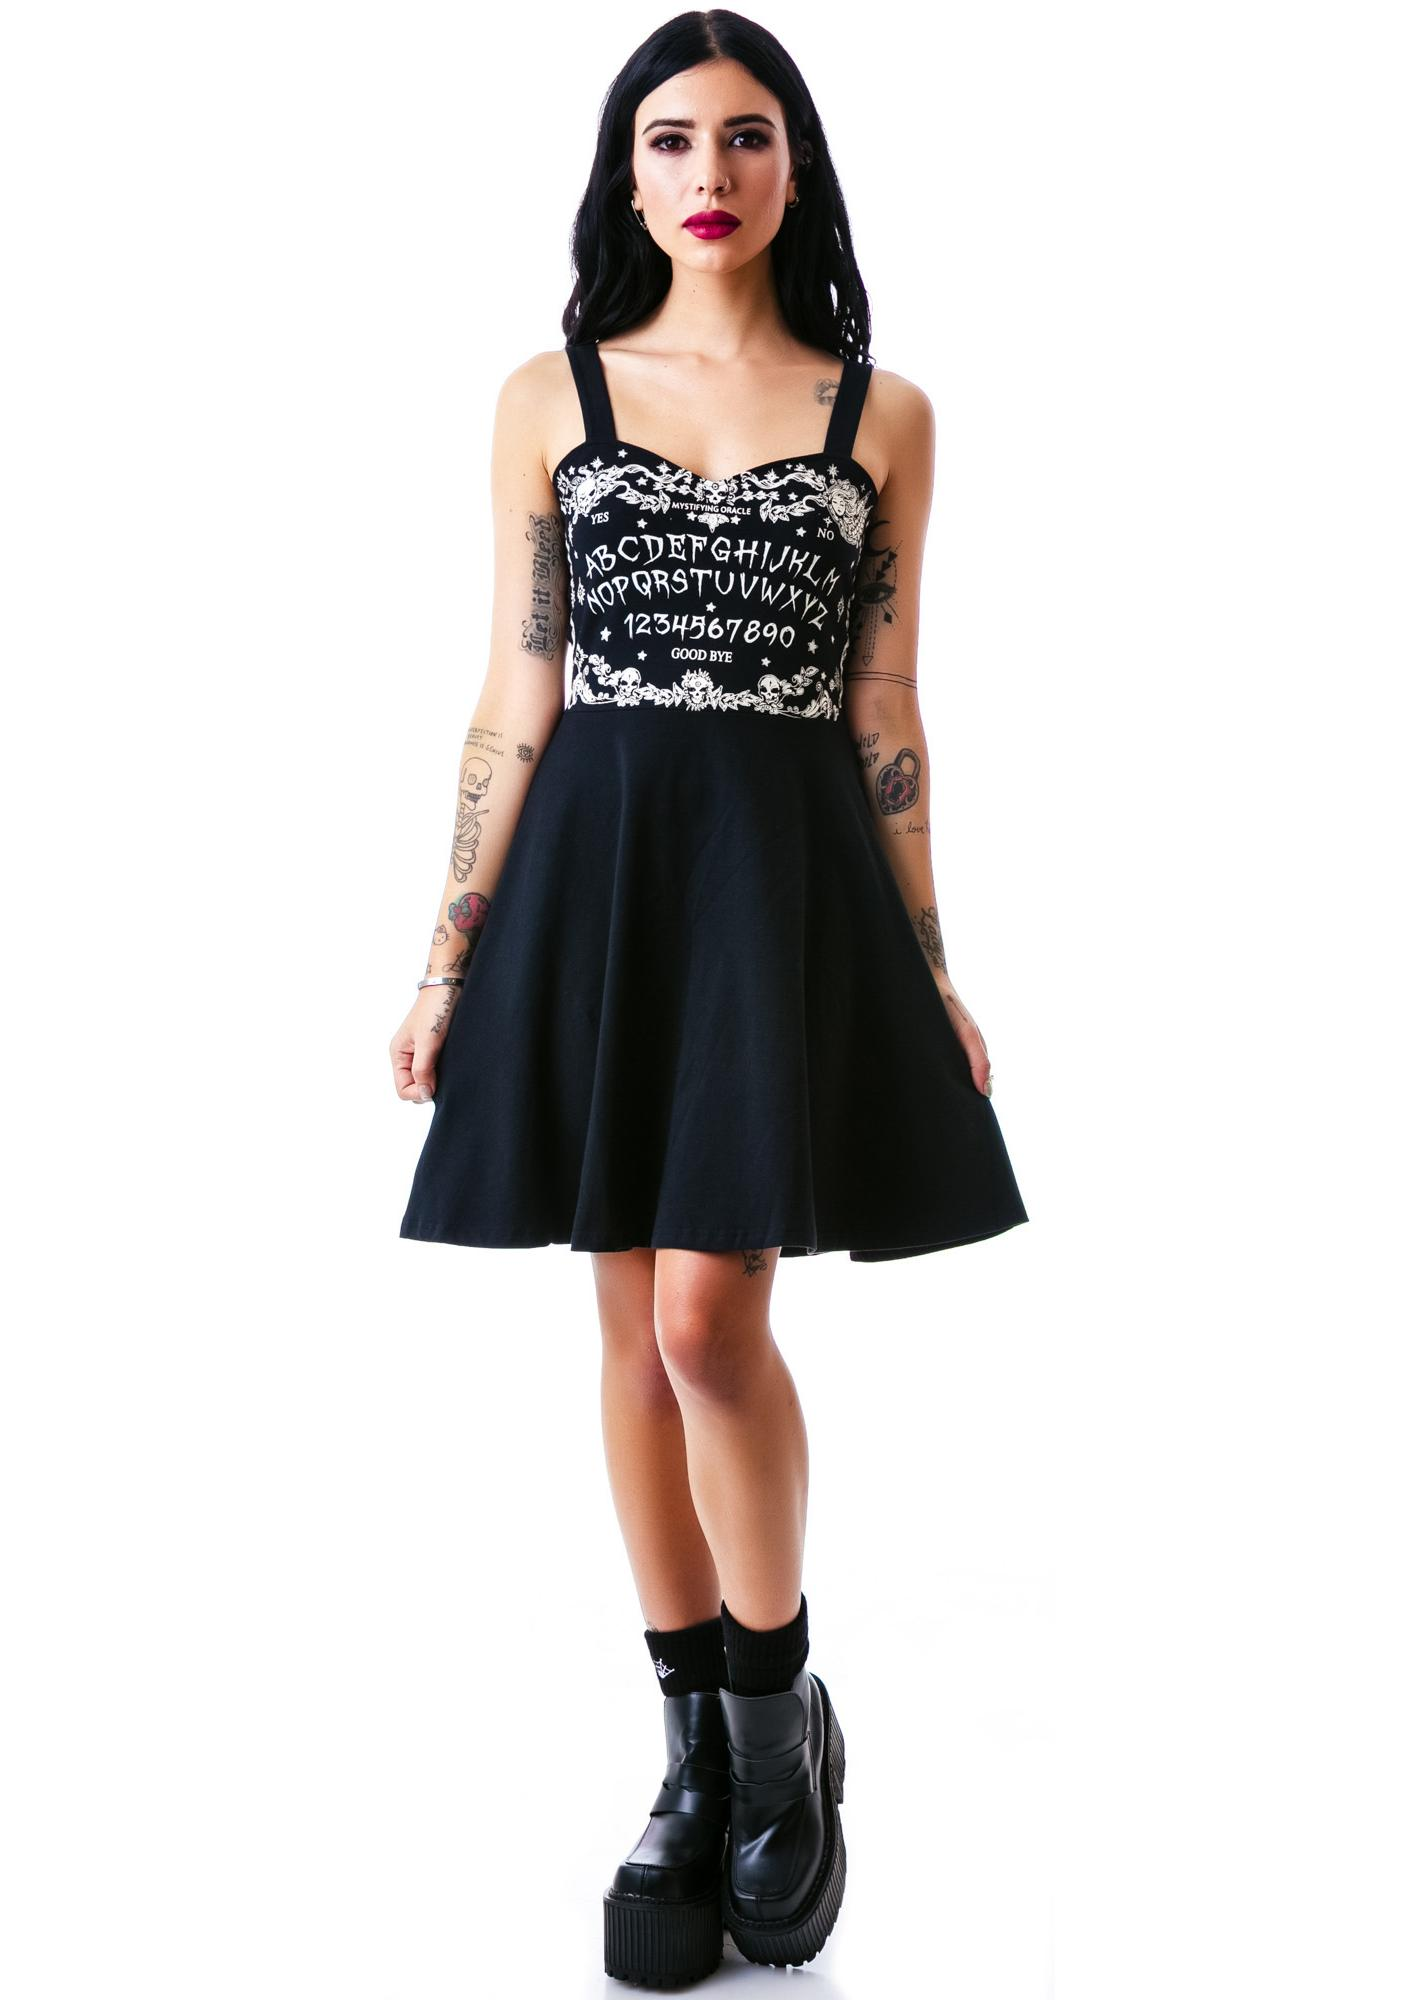 Ouija Sweetheart Dress